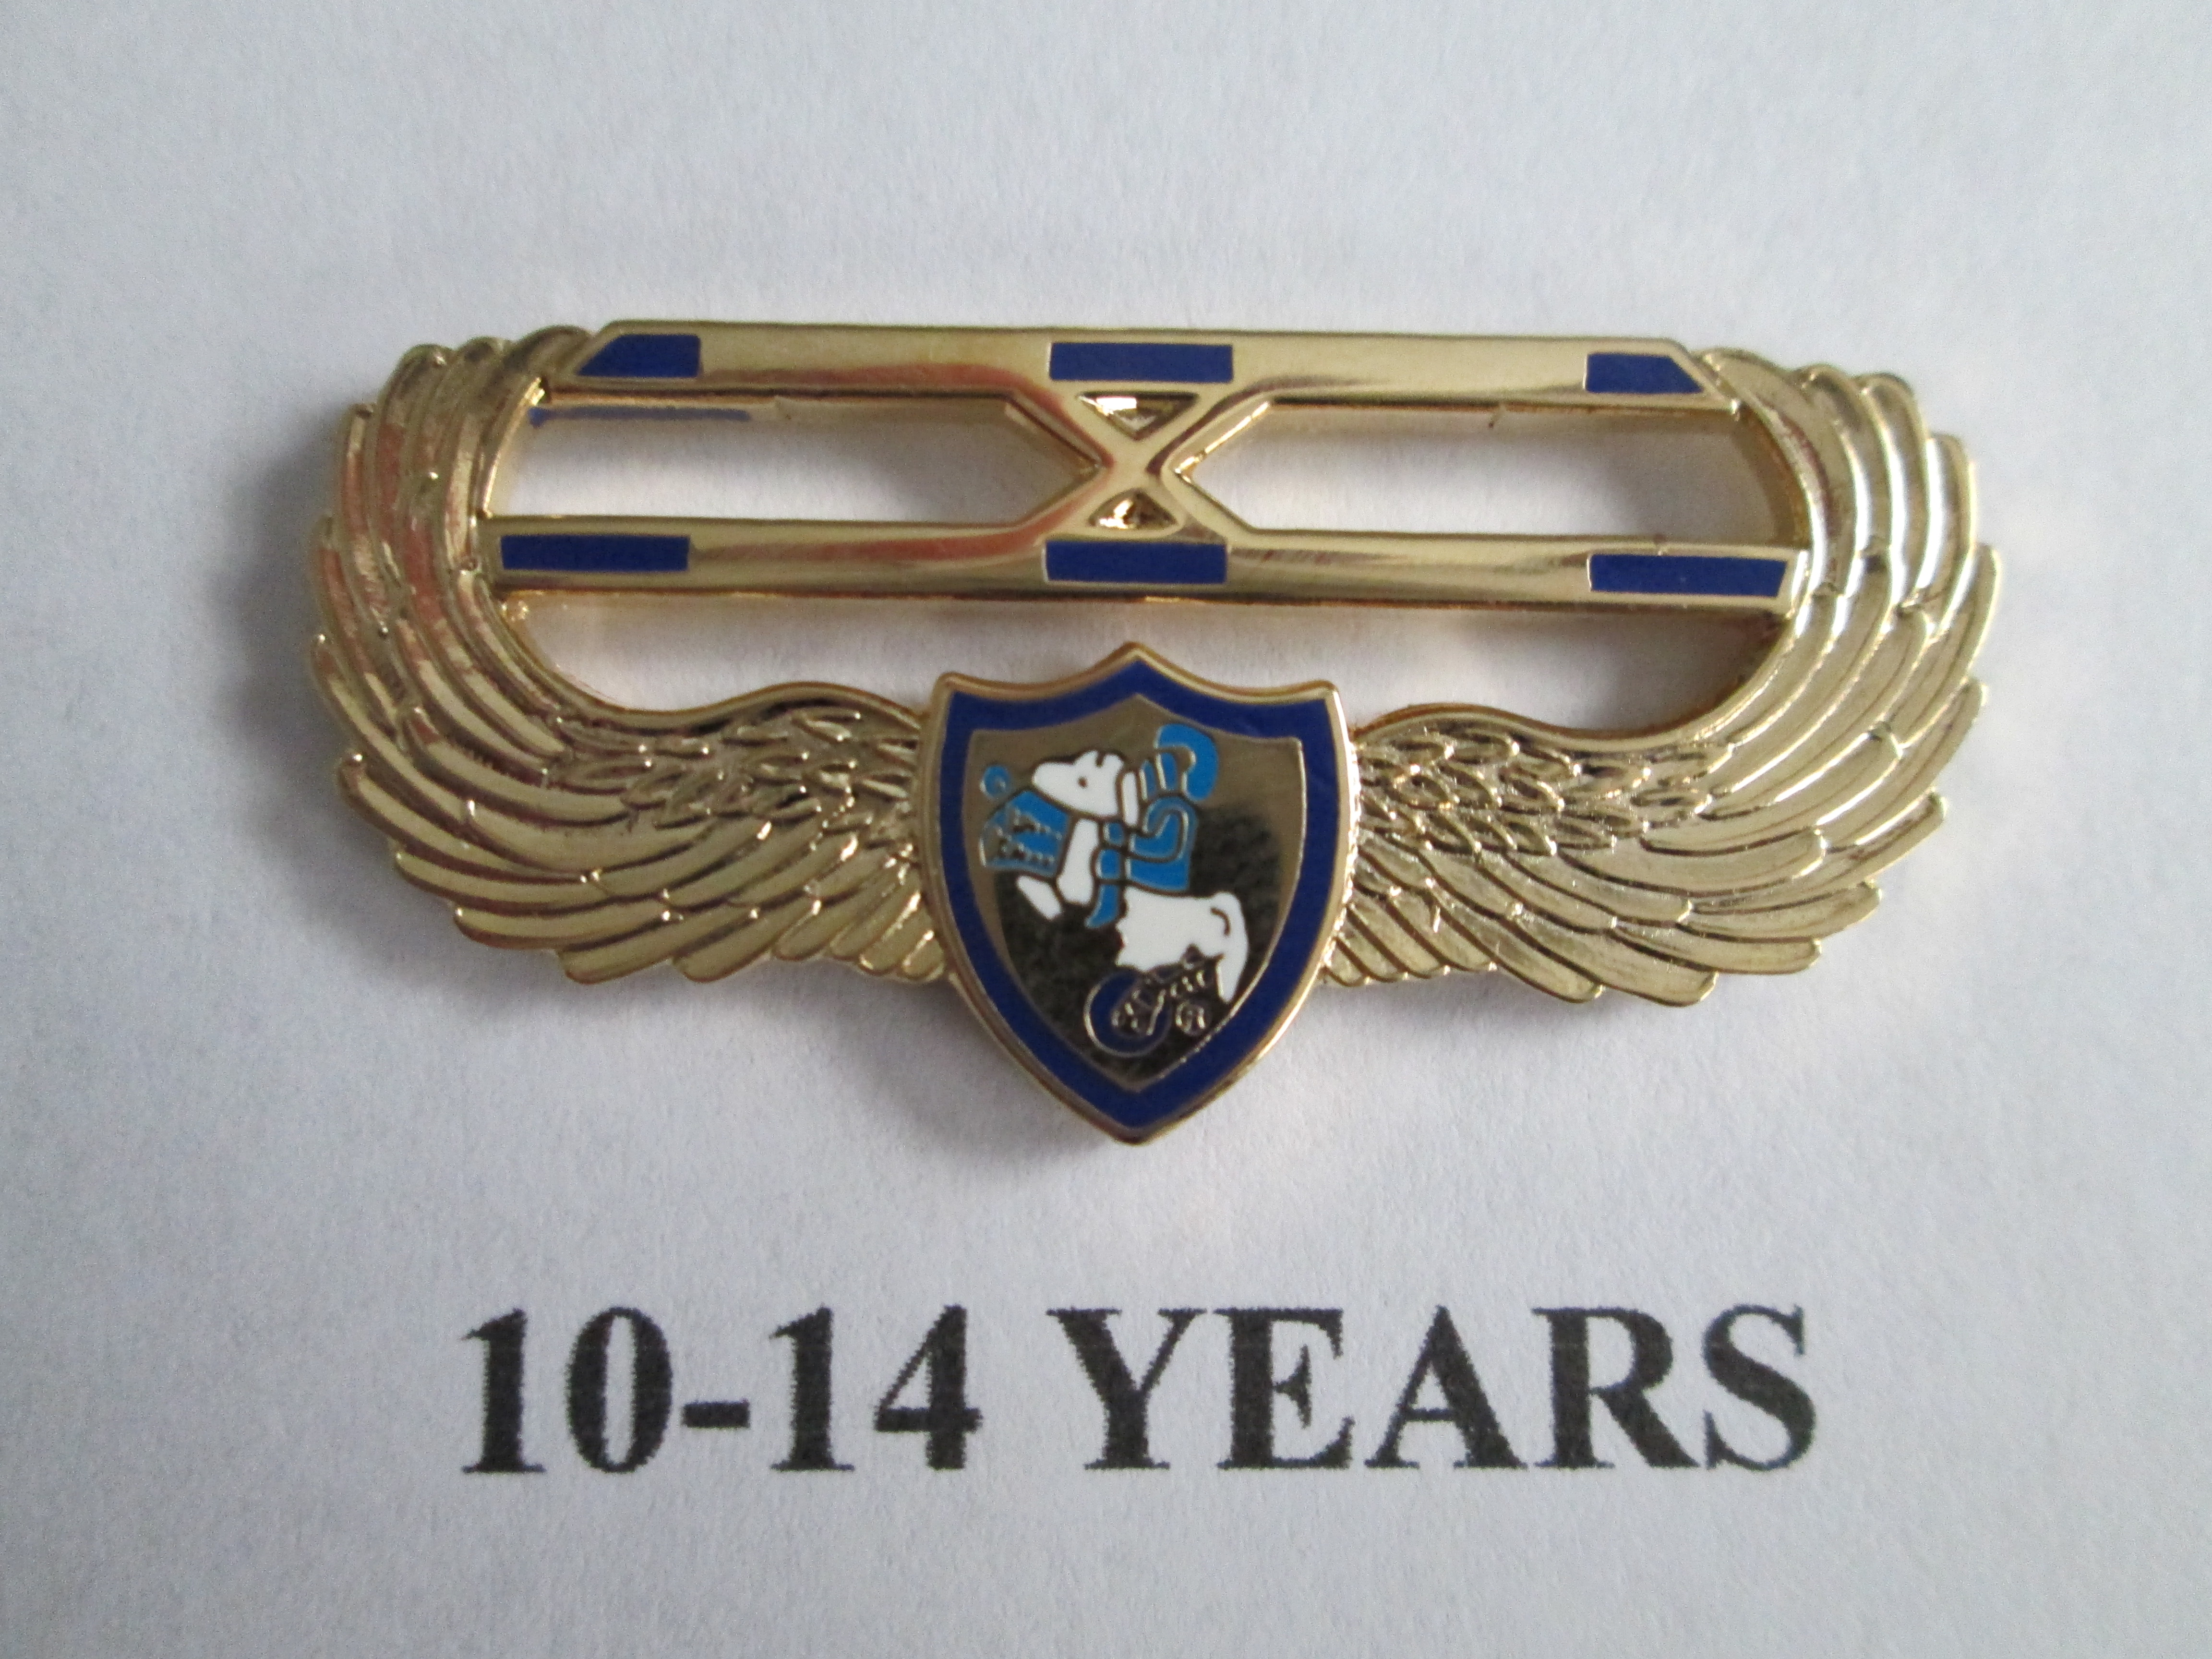 chapter_pins__10___14_years_of_service